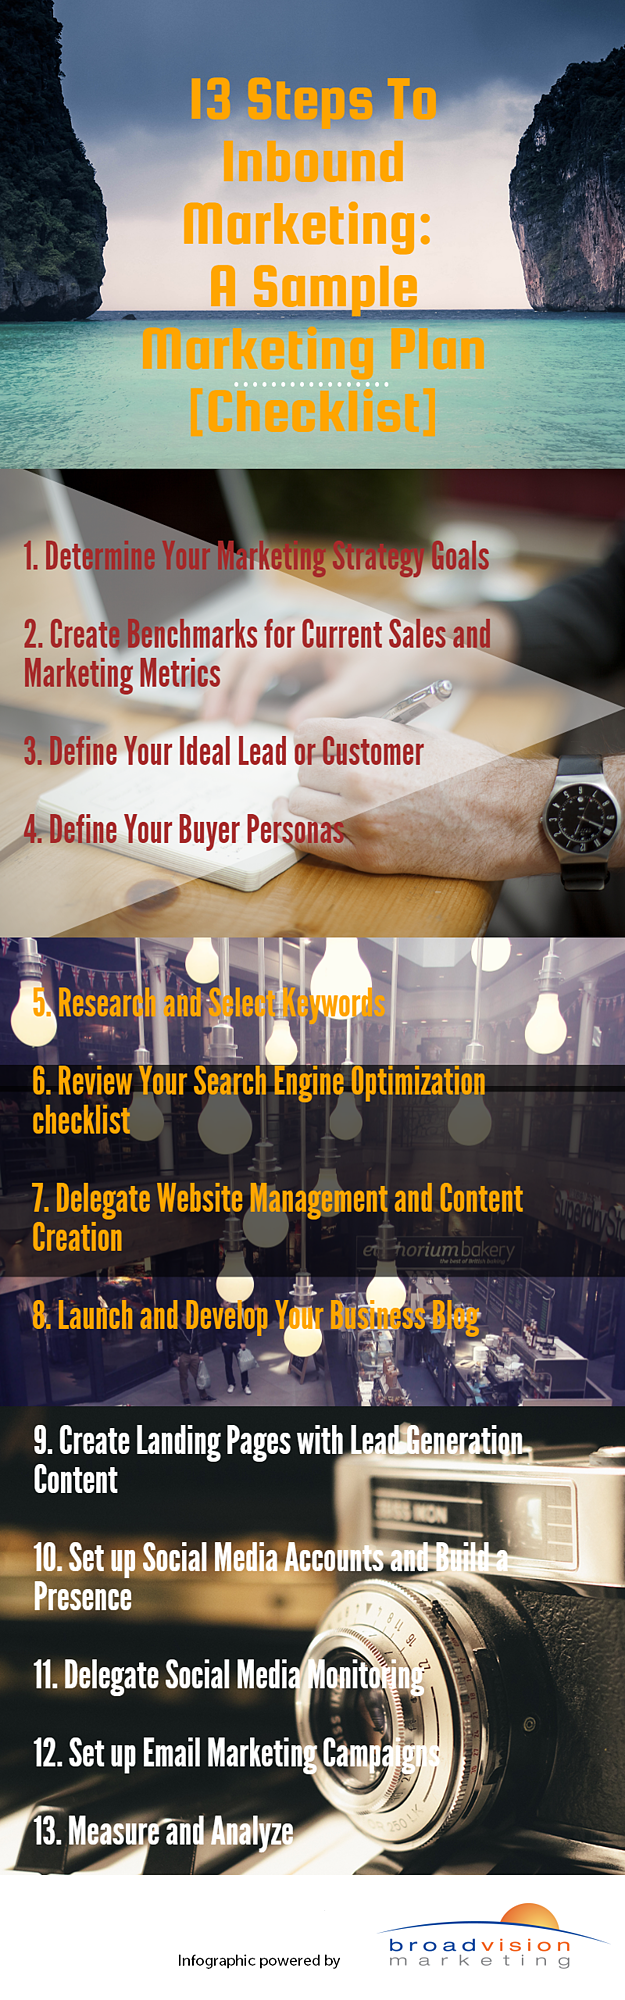 13-steps-of-sample-marketing-plan